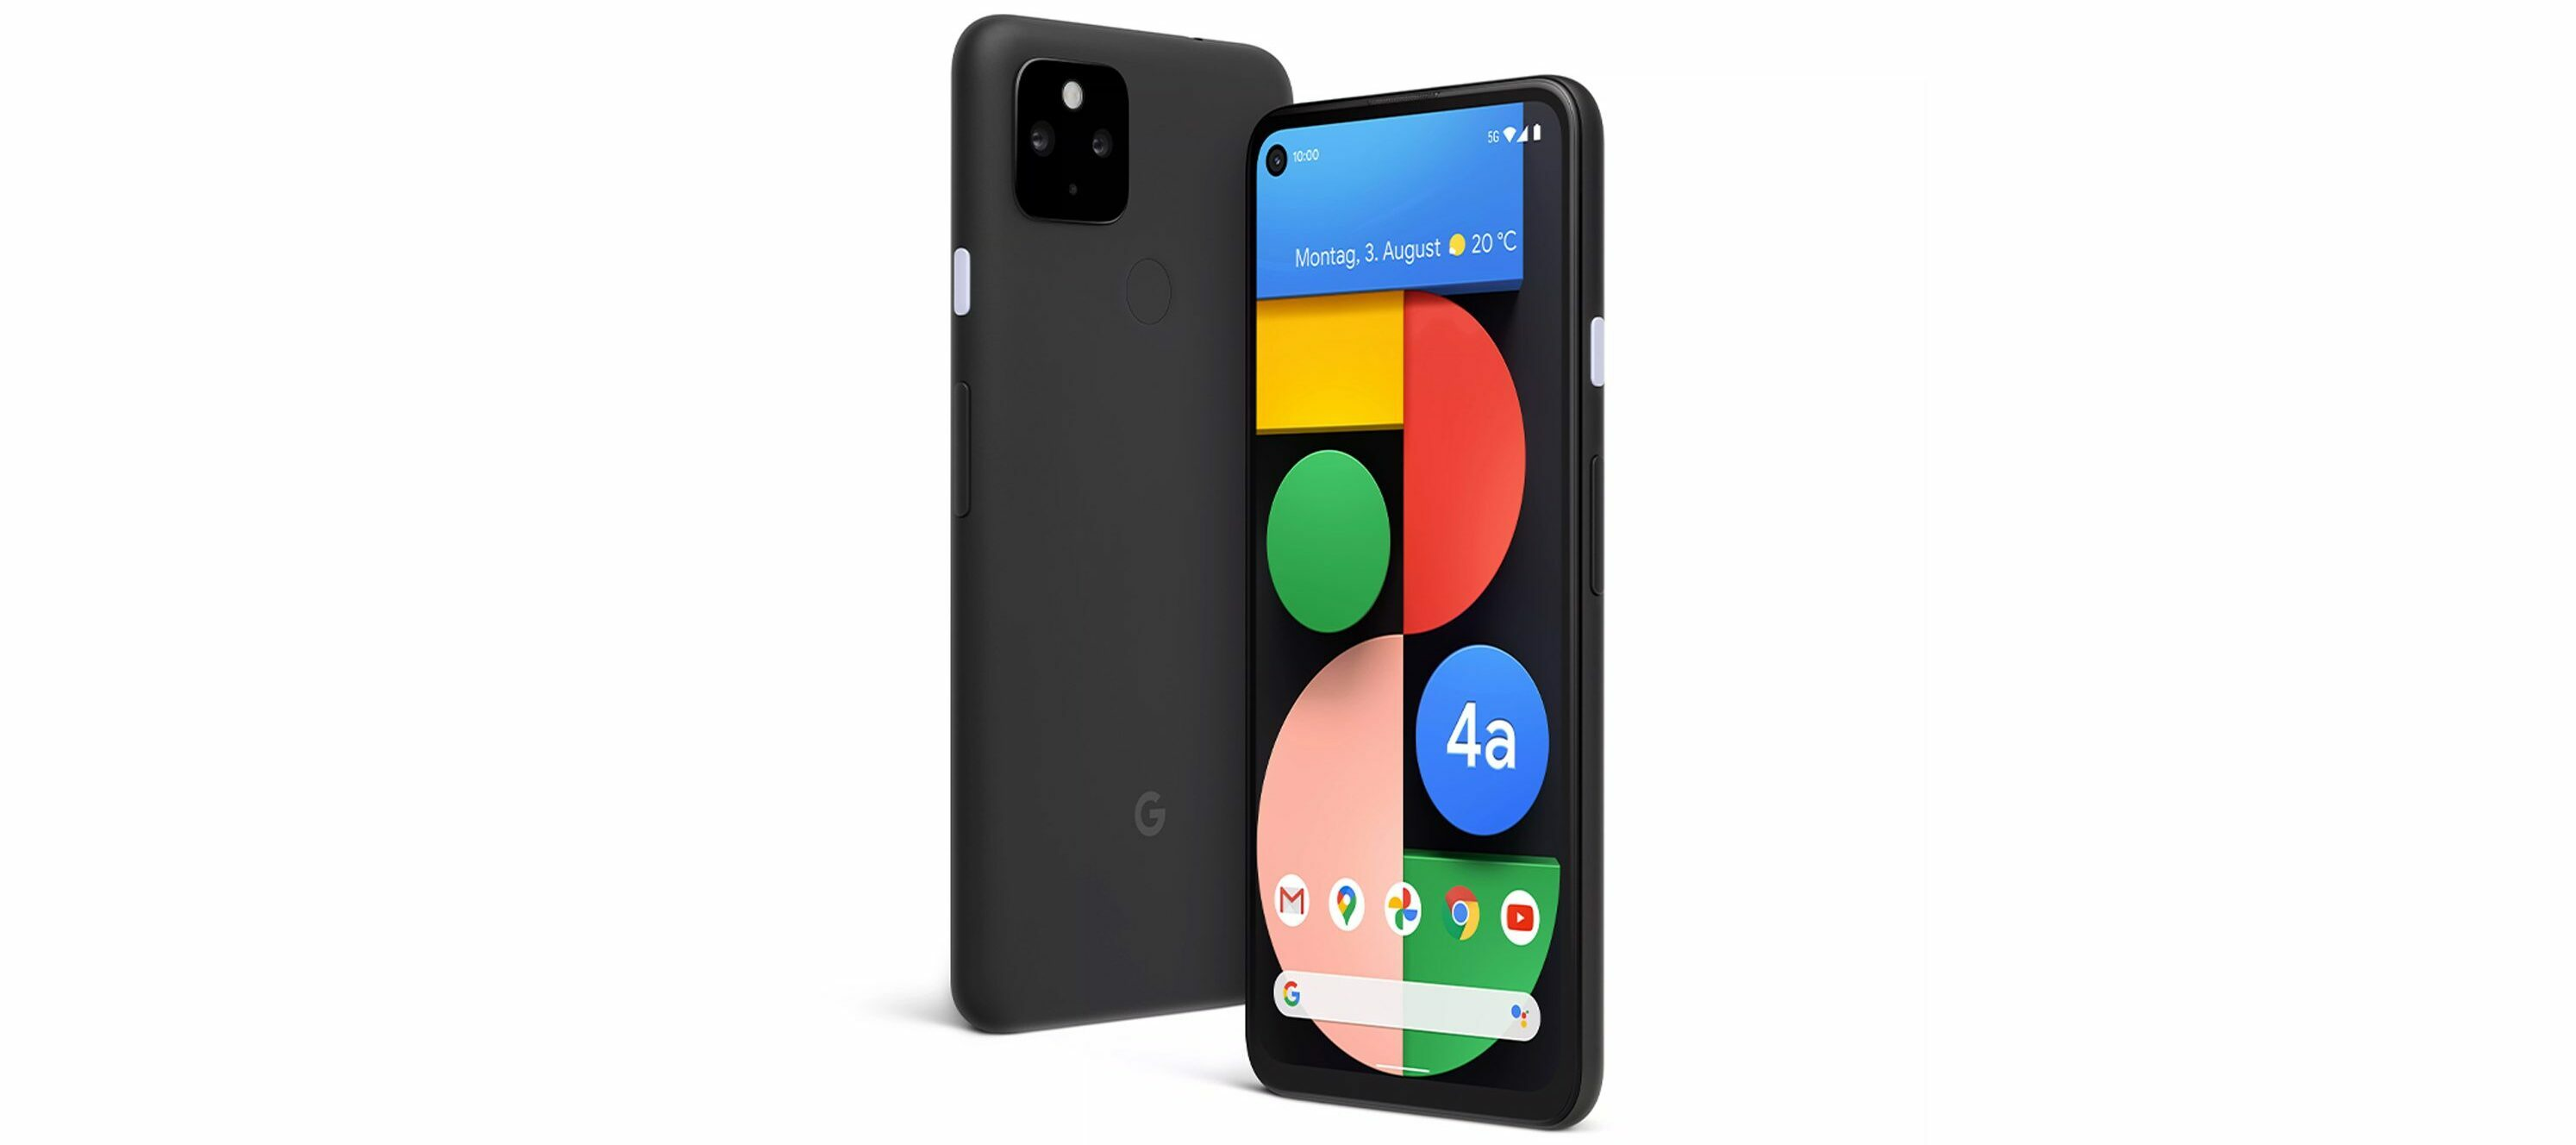 Will the new Pixel 4a with 5G be available at Koodo?